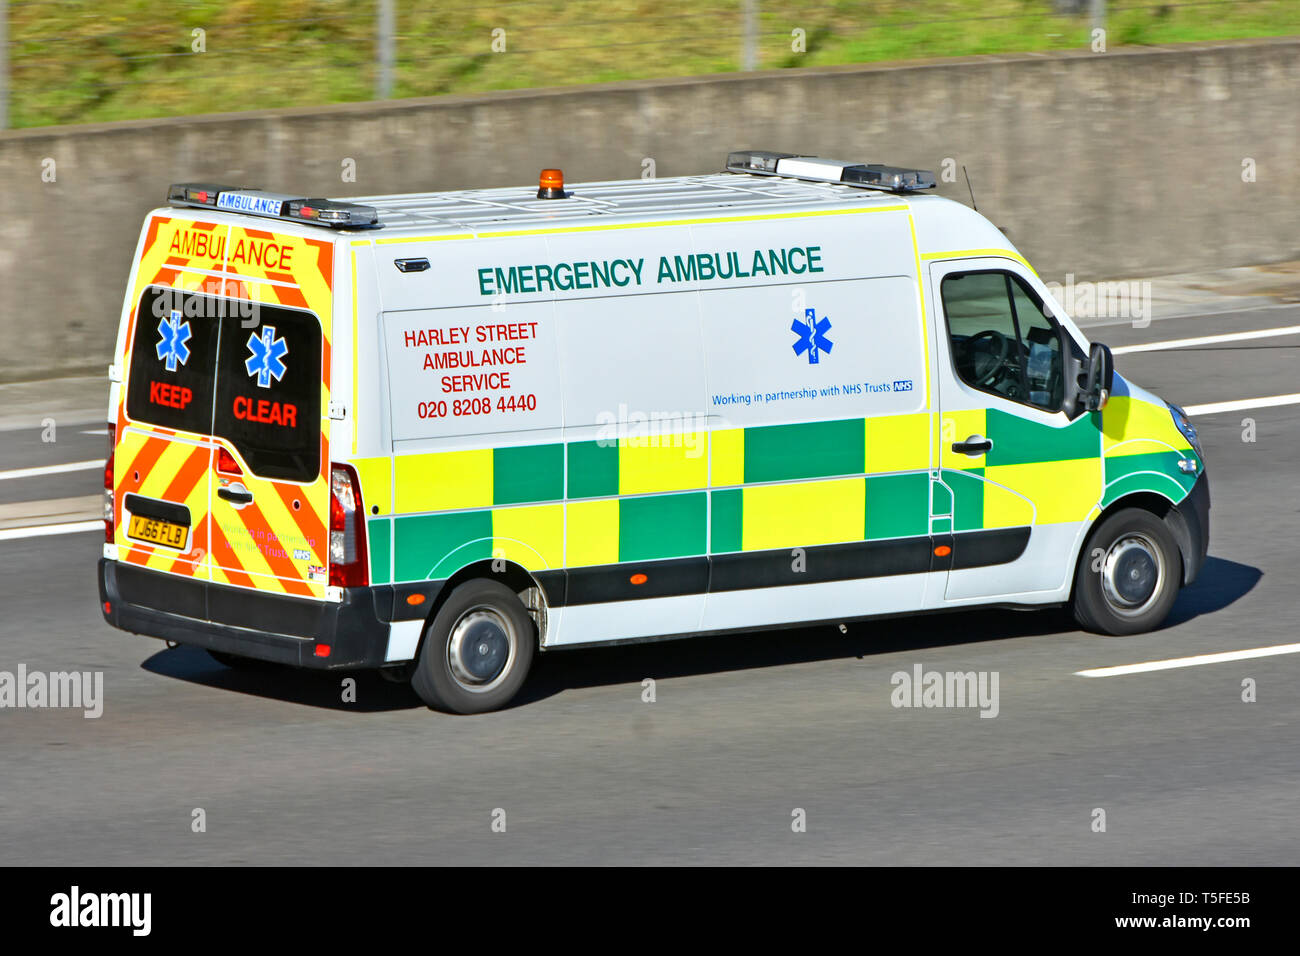 Harley Street private emergency ambulance service vehicle working in partnership with NHS healthcare trusts driving along M25 motorway England UK - Stock Image